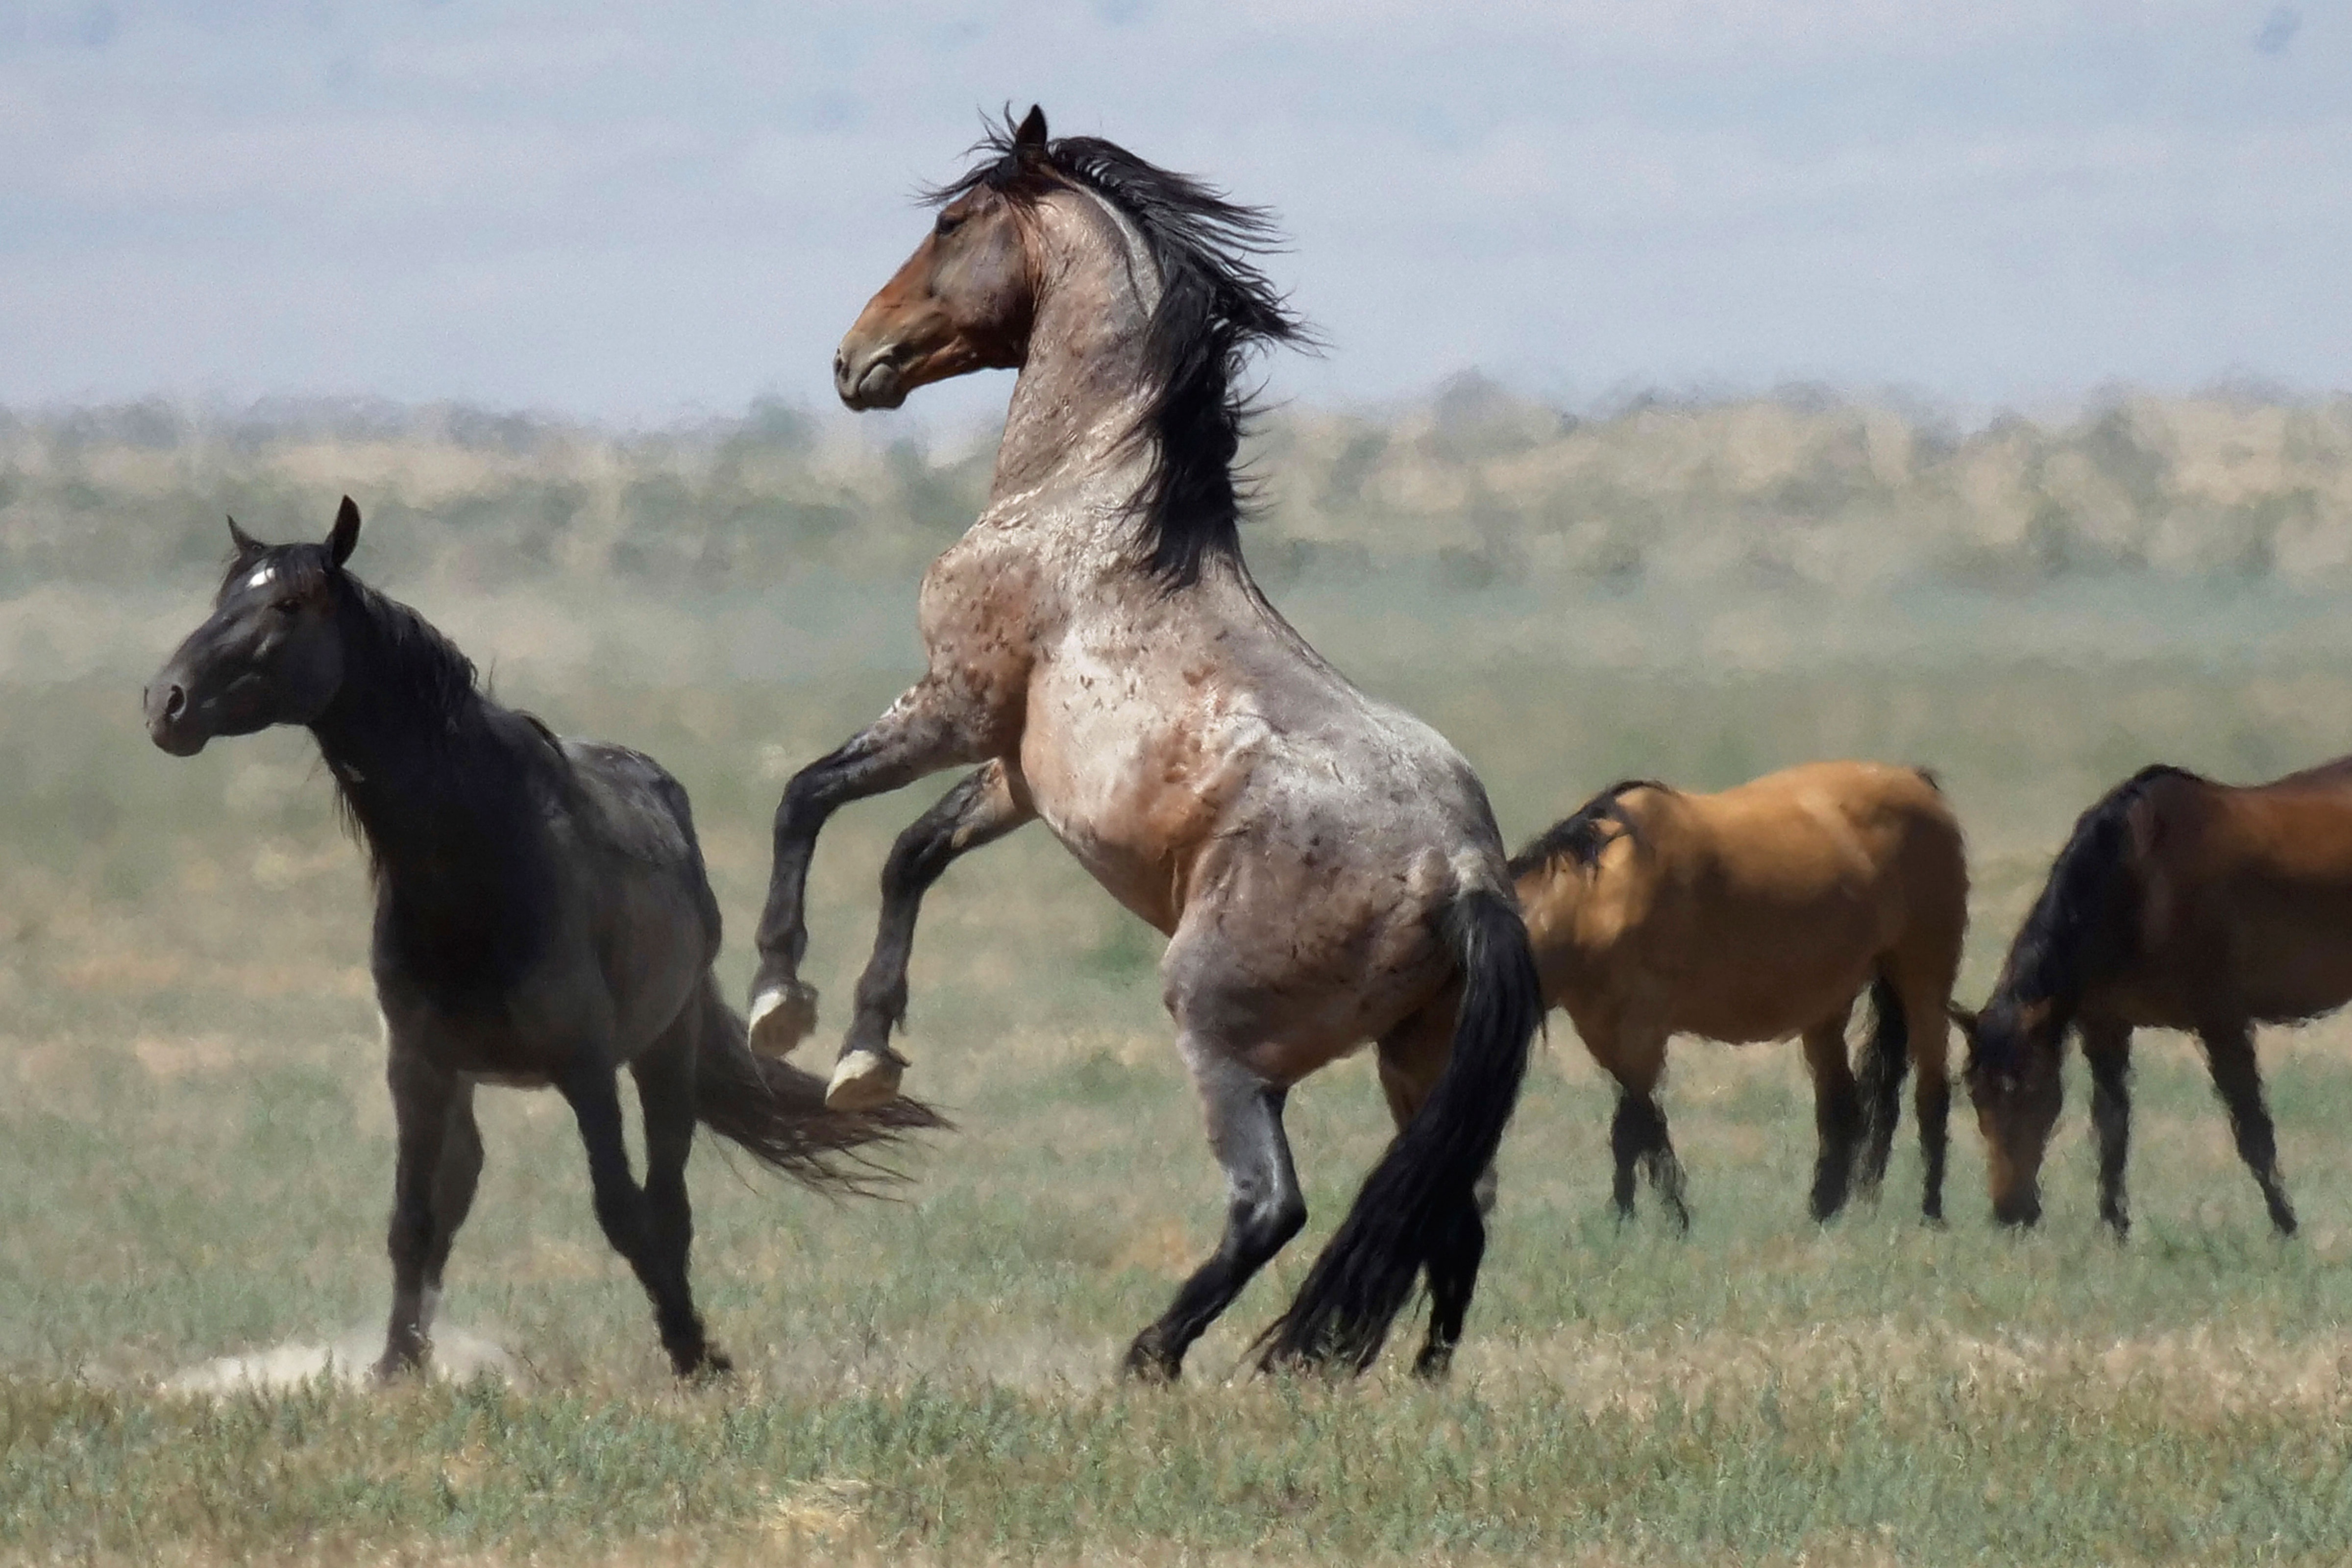 A wild horse jumps among others near Salt Lake City, July 18, 2018. The U.S. government is seeking new pastures for thousands of wild horses that have overpopulated Western ranges.